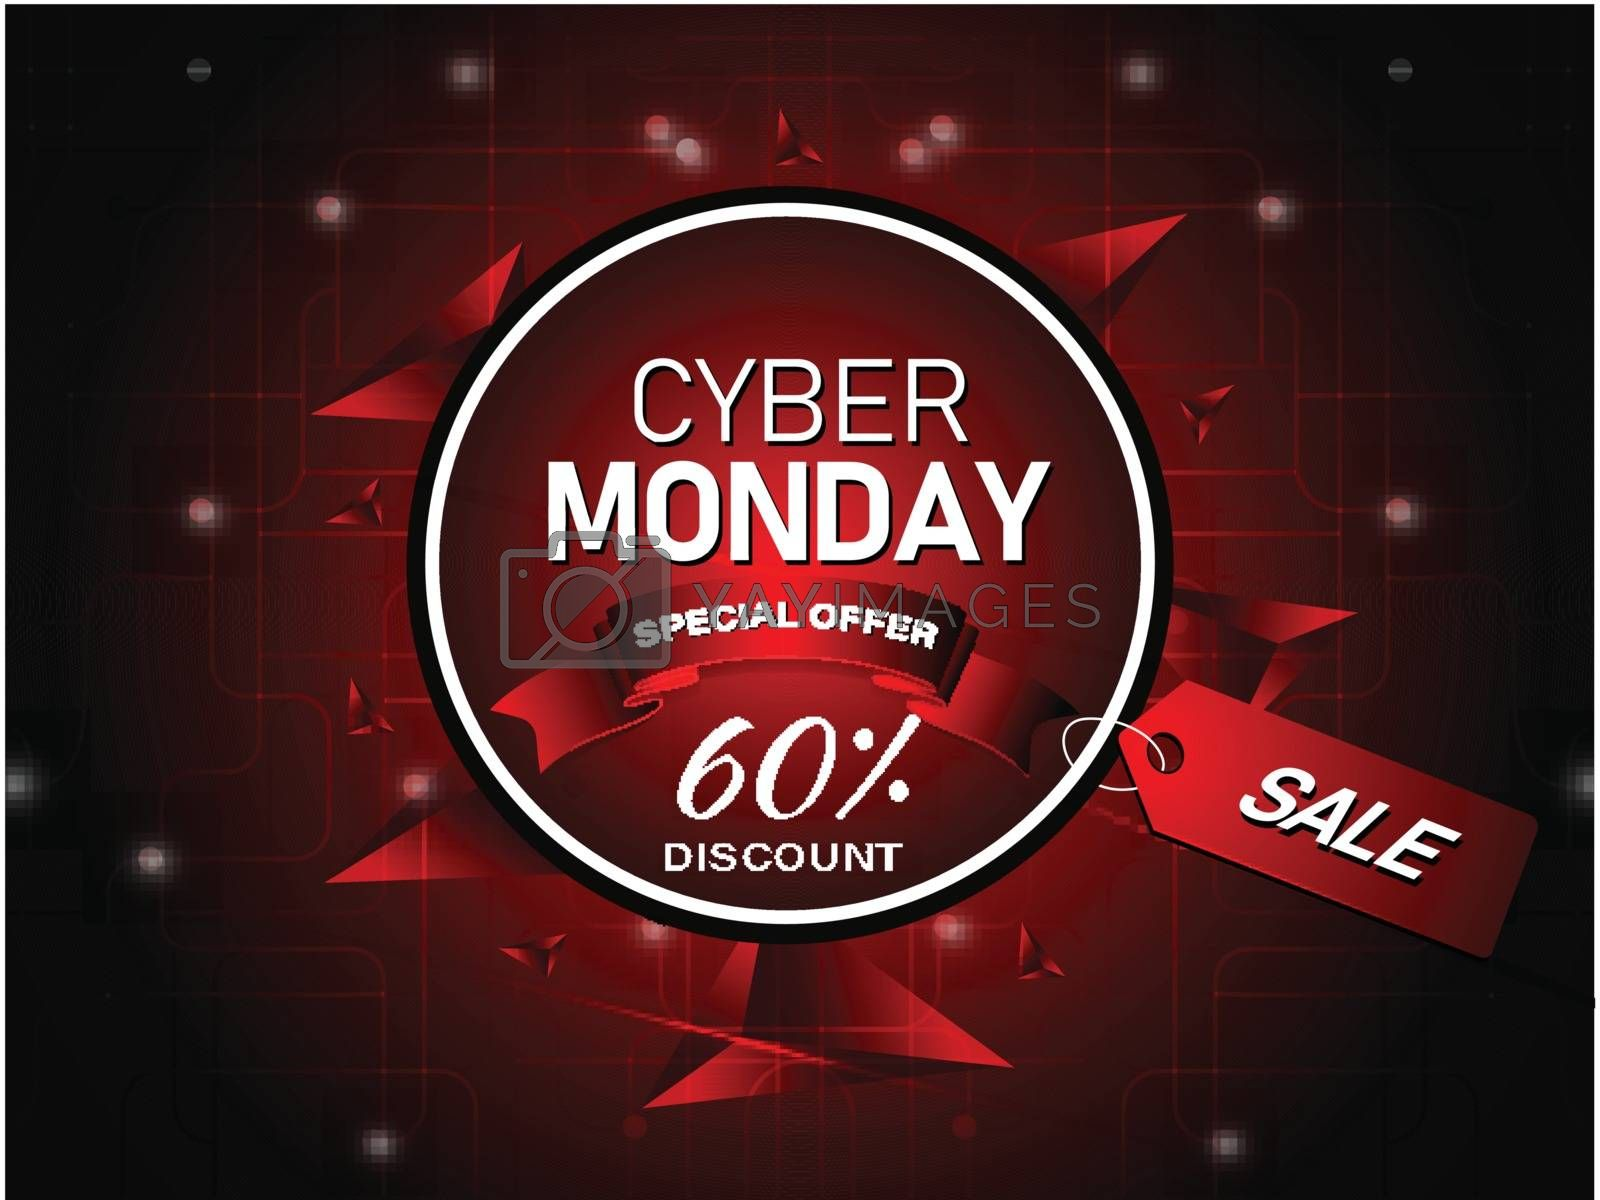 Special offer with 60% discount, advertising poster or template design with abstract elements for Cyber Monday Sale.